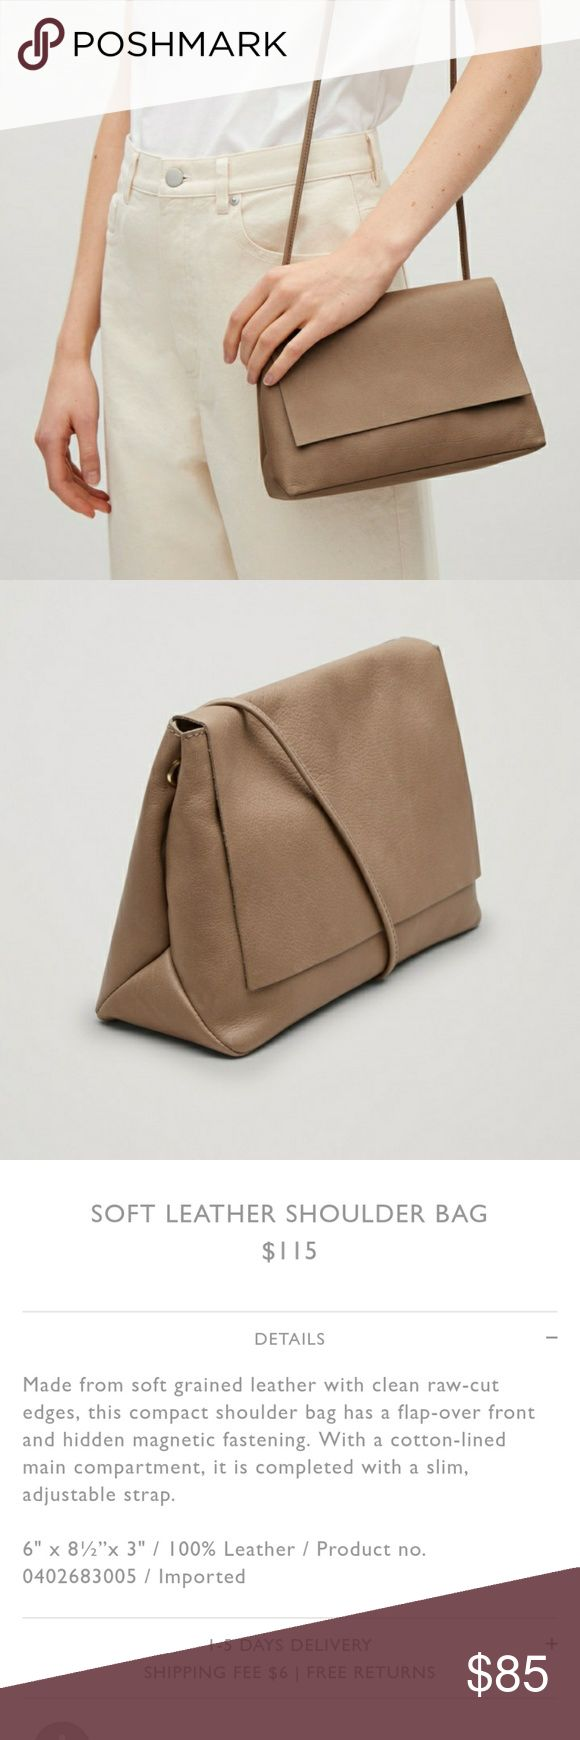 COS soft leather bag Like new. Comes with all original packaging. Color Taupe. COS Bags